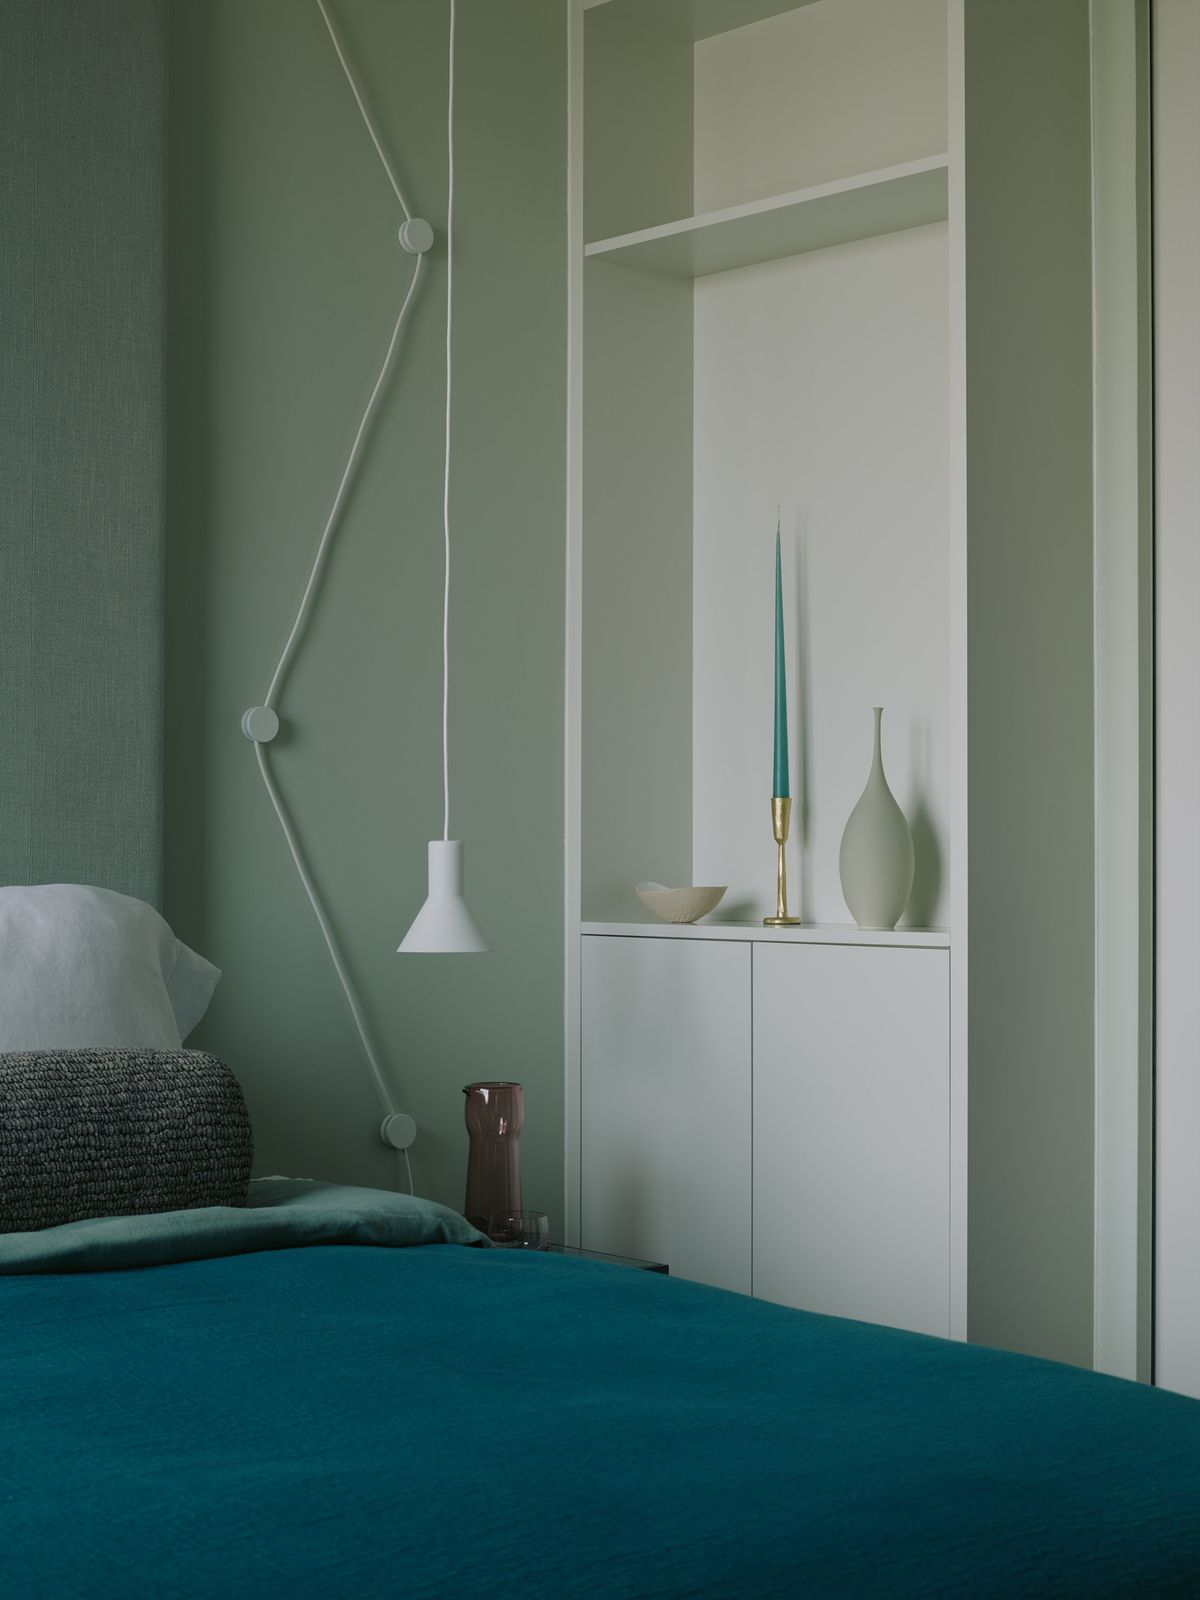 A bed with blue covers next to a white shelf.